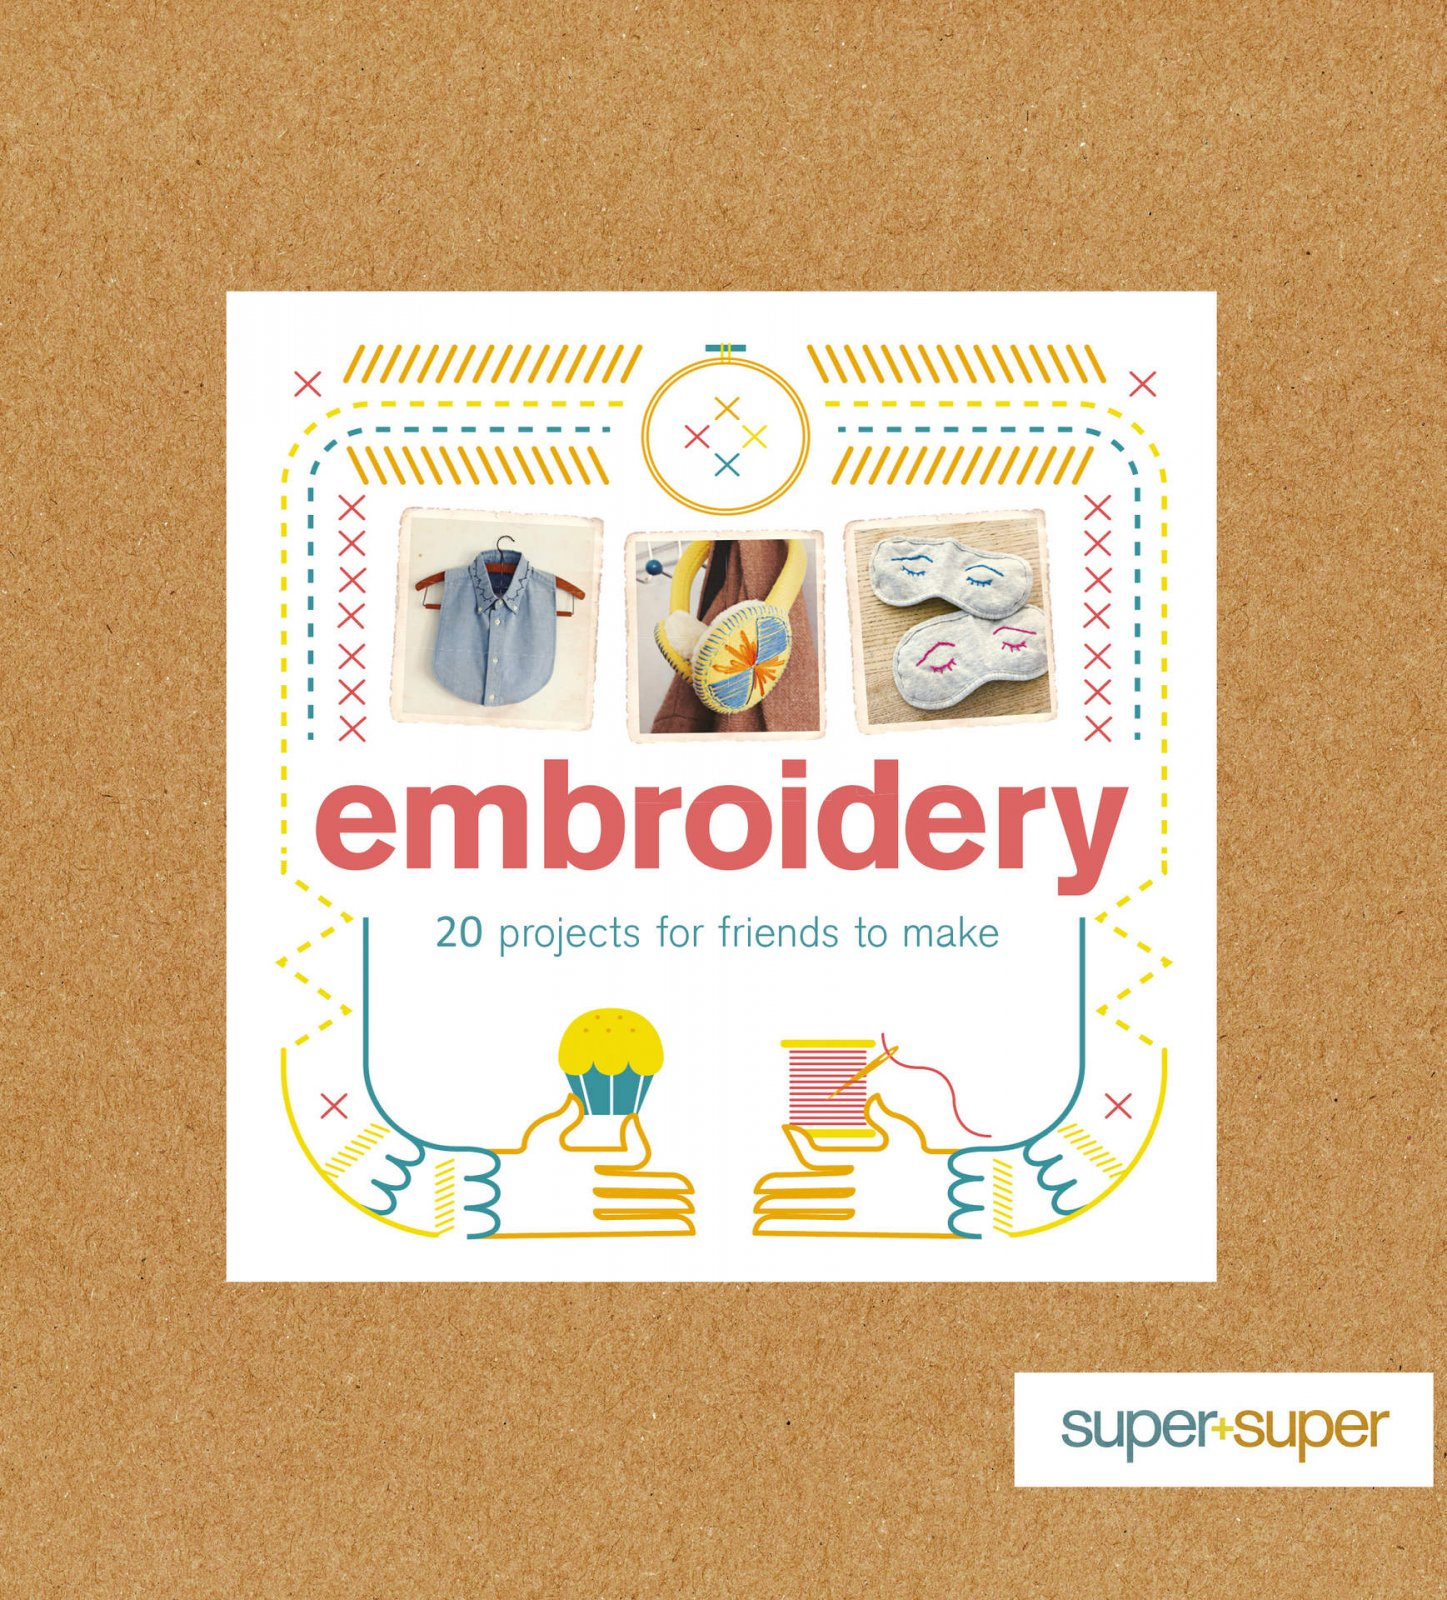 Embroidery - Super+Super